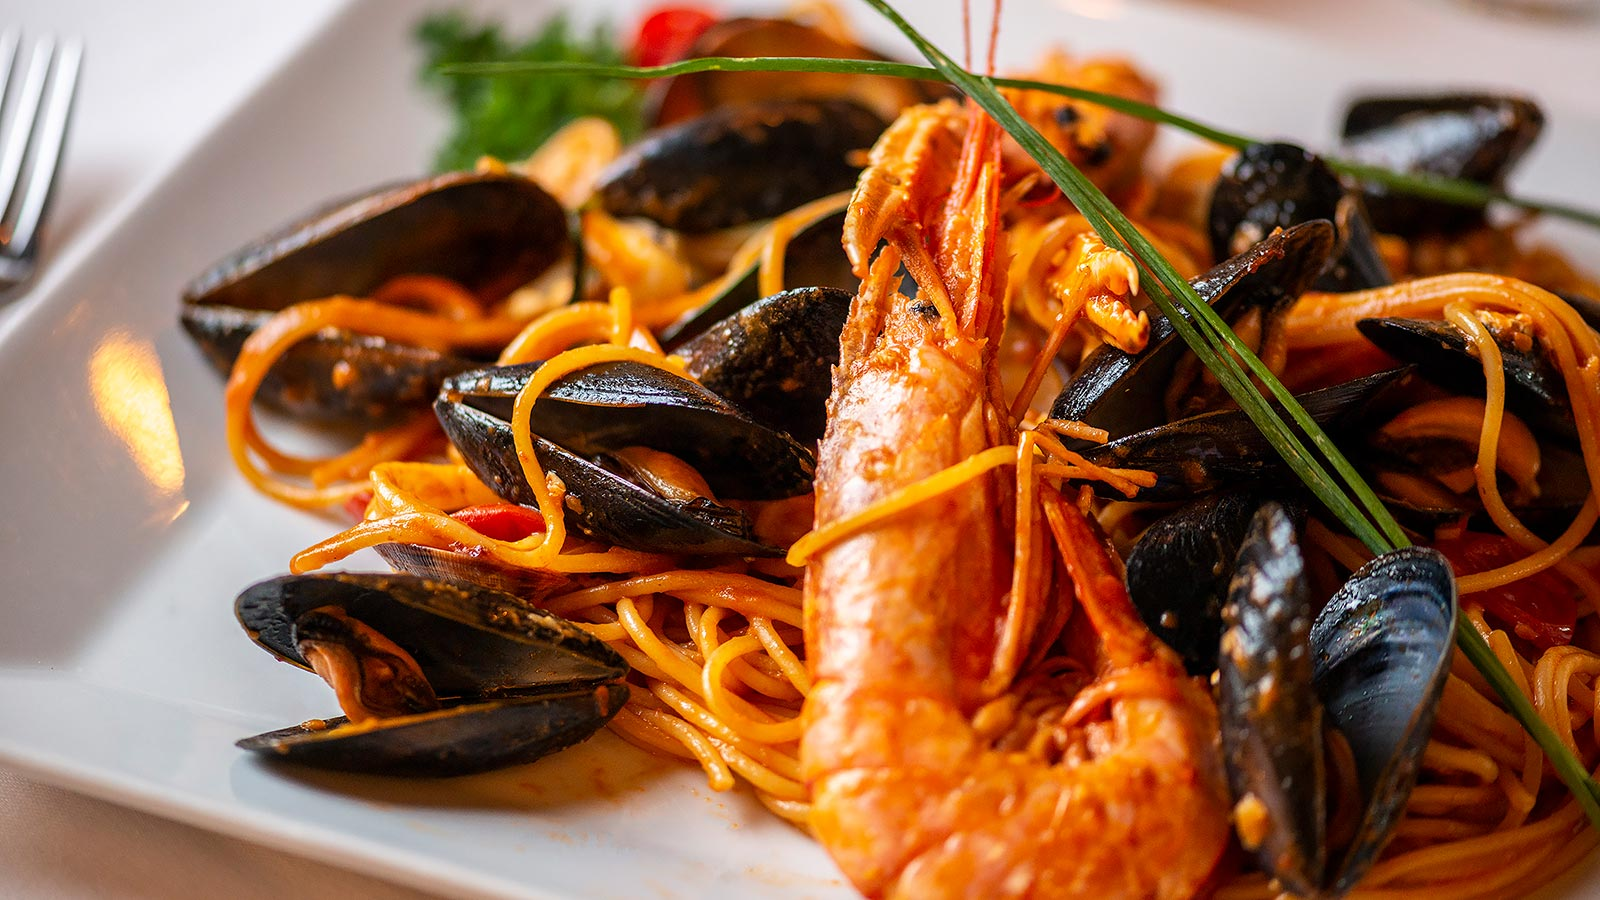 Spaghetti ai frutti di mare at restaurant in limone lake garda